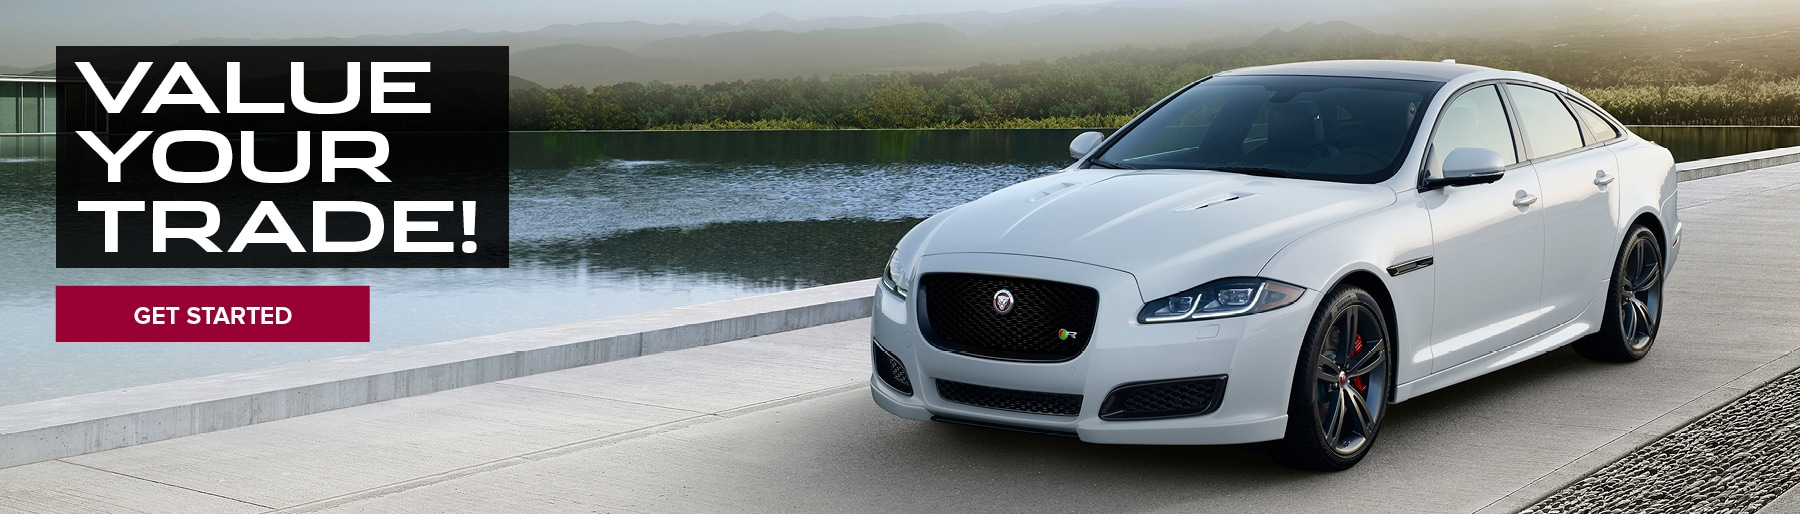 jaguar dealer columbia sc | jaguar columbia